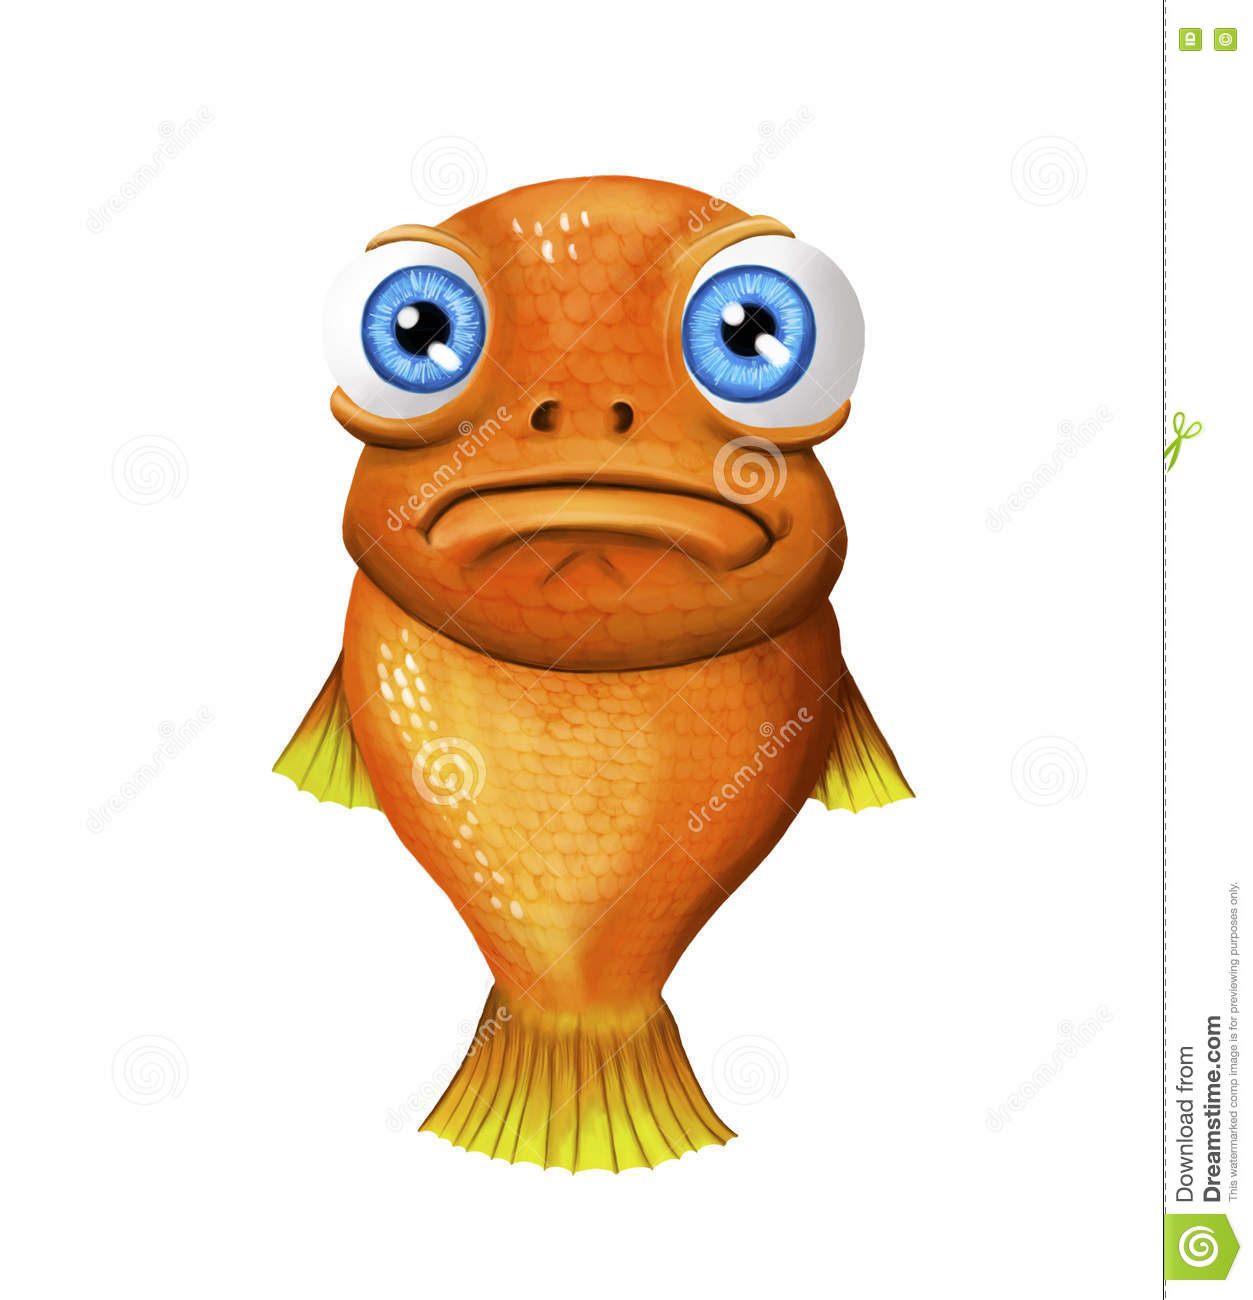 Fishface stock illustration. Illustration of lost, painting.